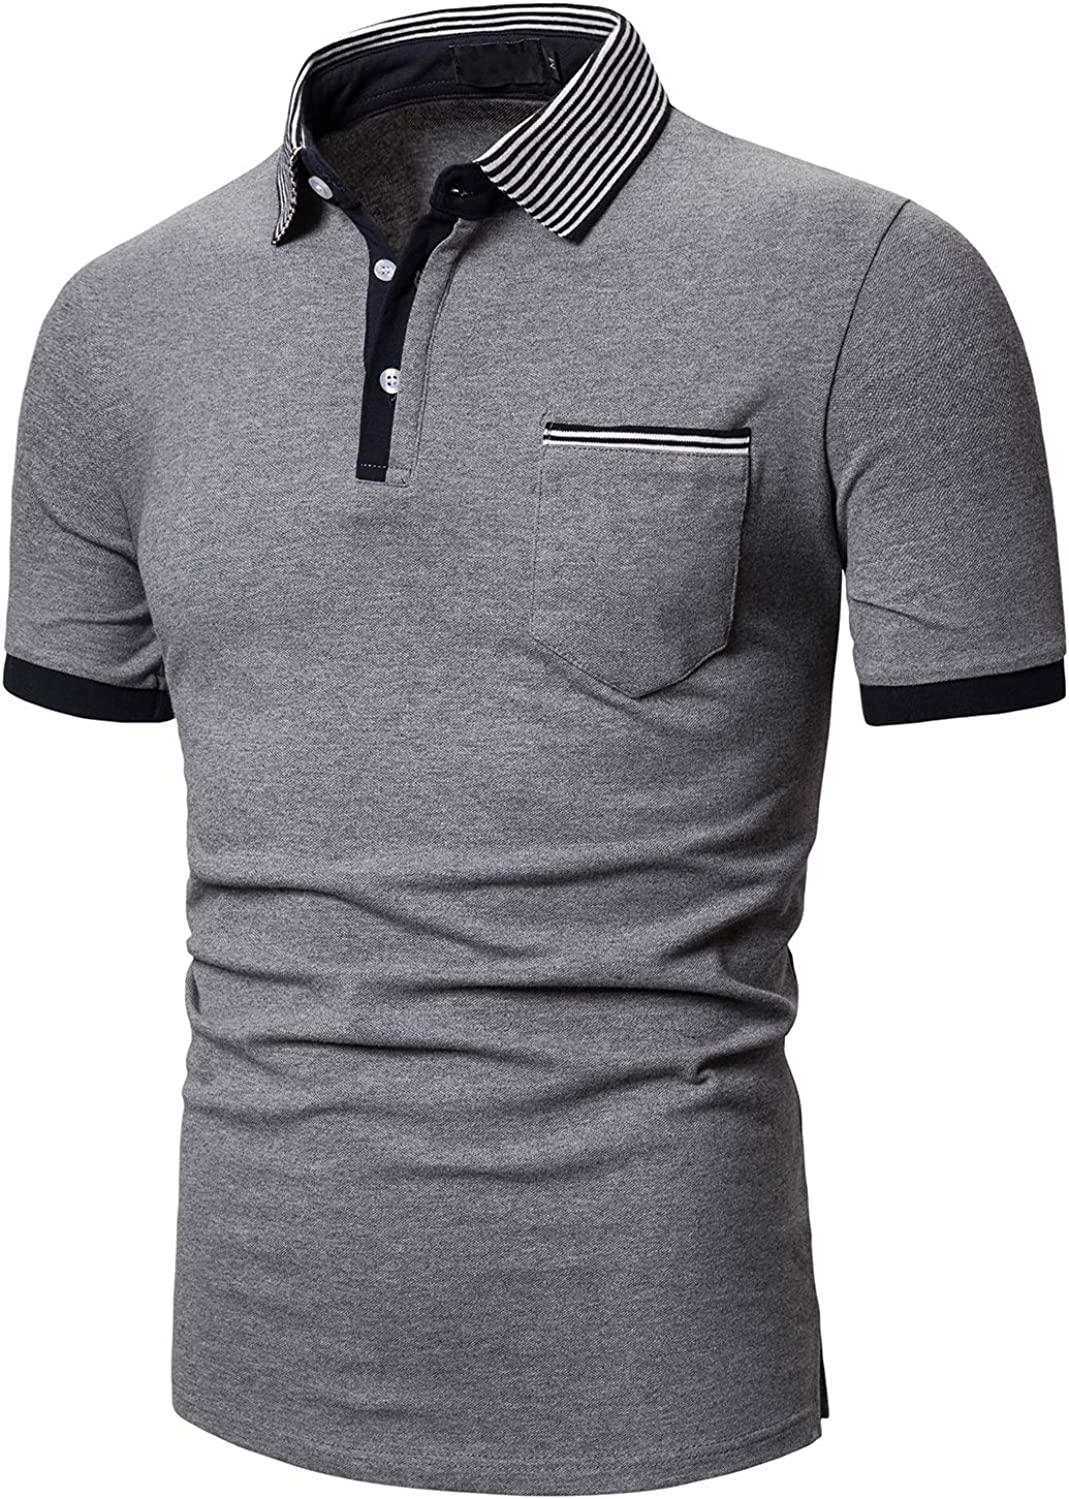 carinacoco Polo Shirts for Men Short Sleeve Casual Striped Collar Cotton Basic T-Shirt Top